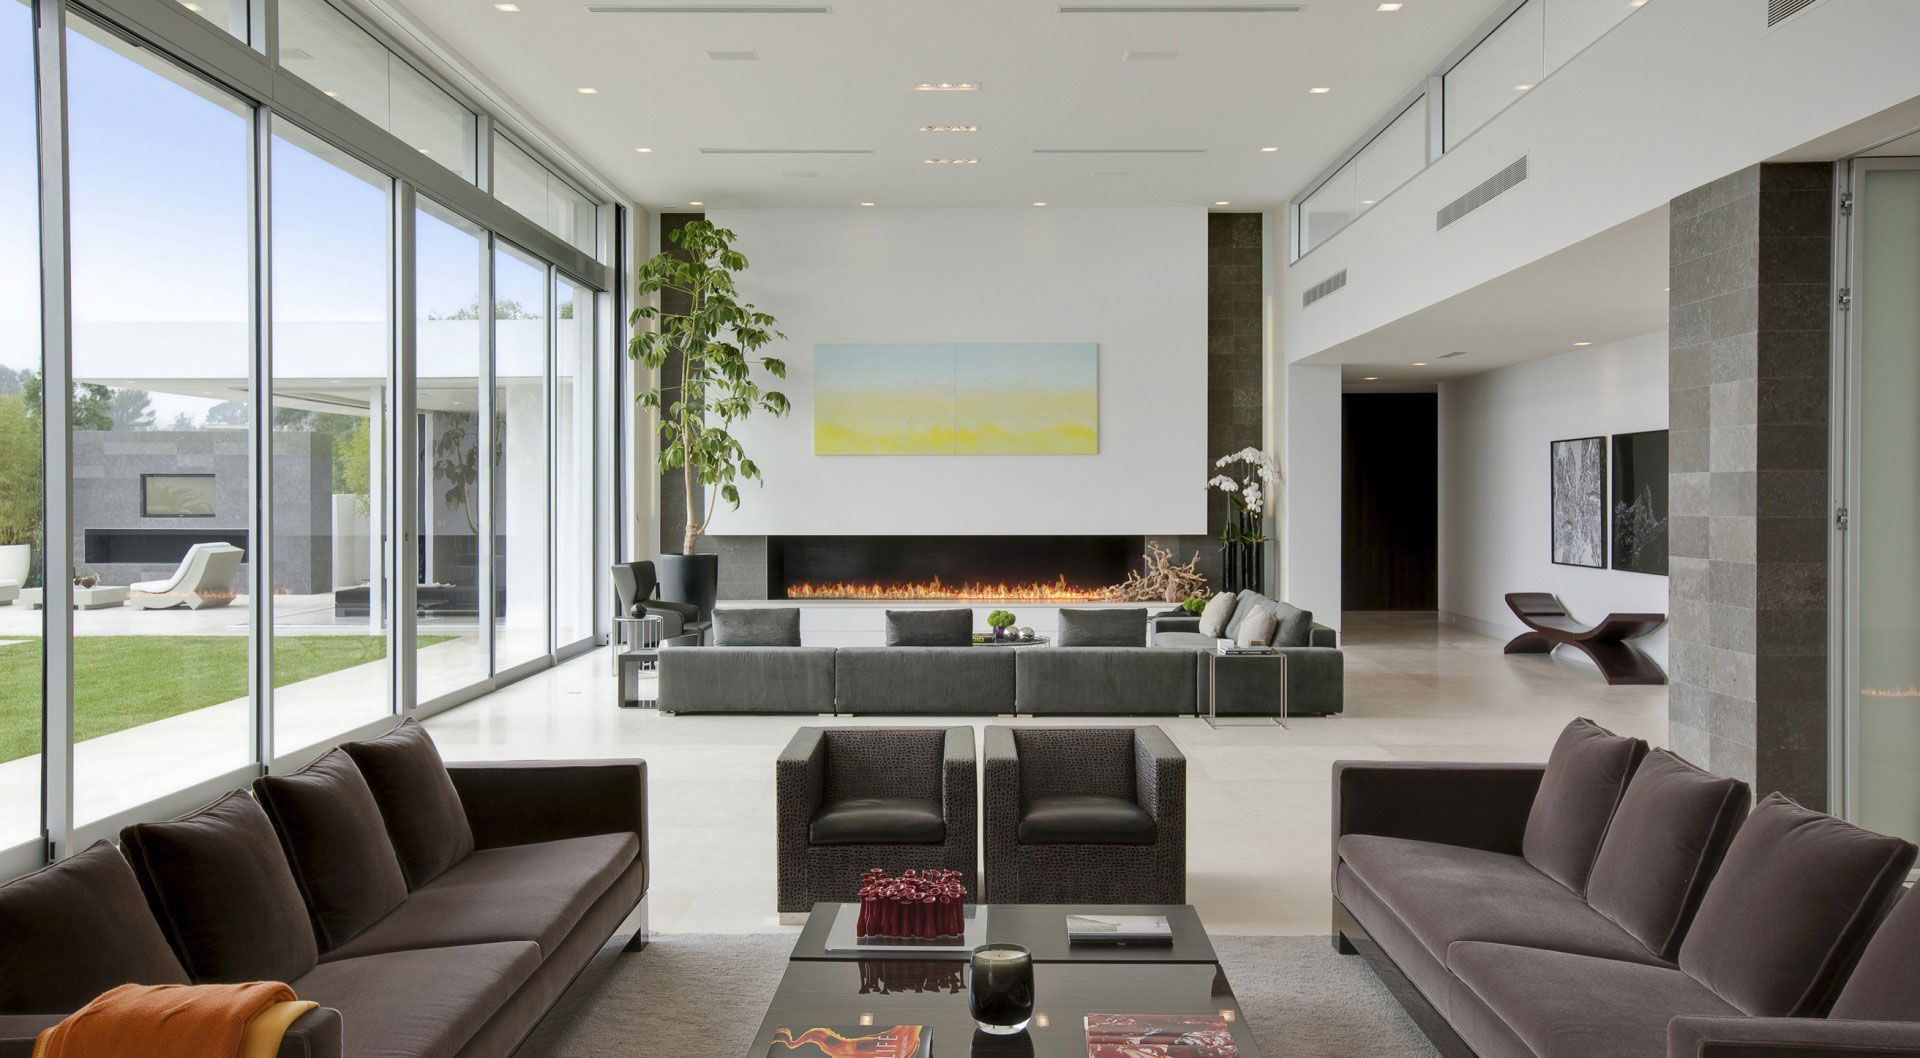 Beverly hills house by mcclean design caandesign for Minimalist house beverly hills